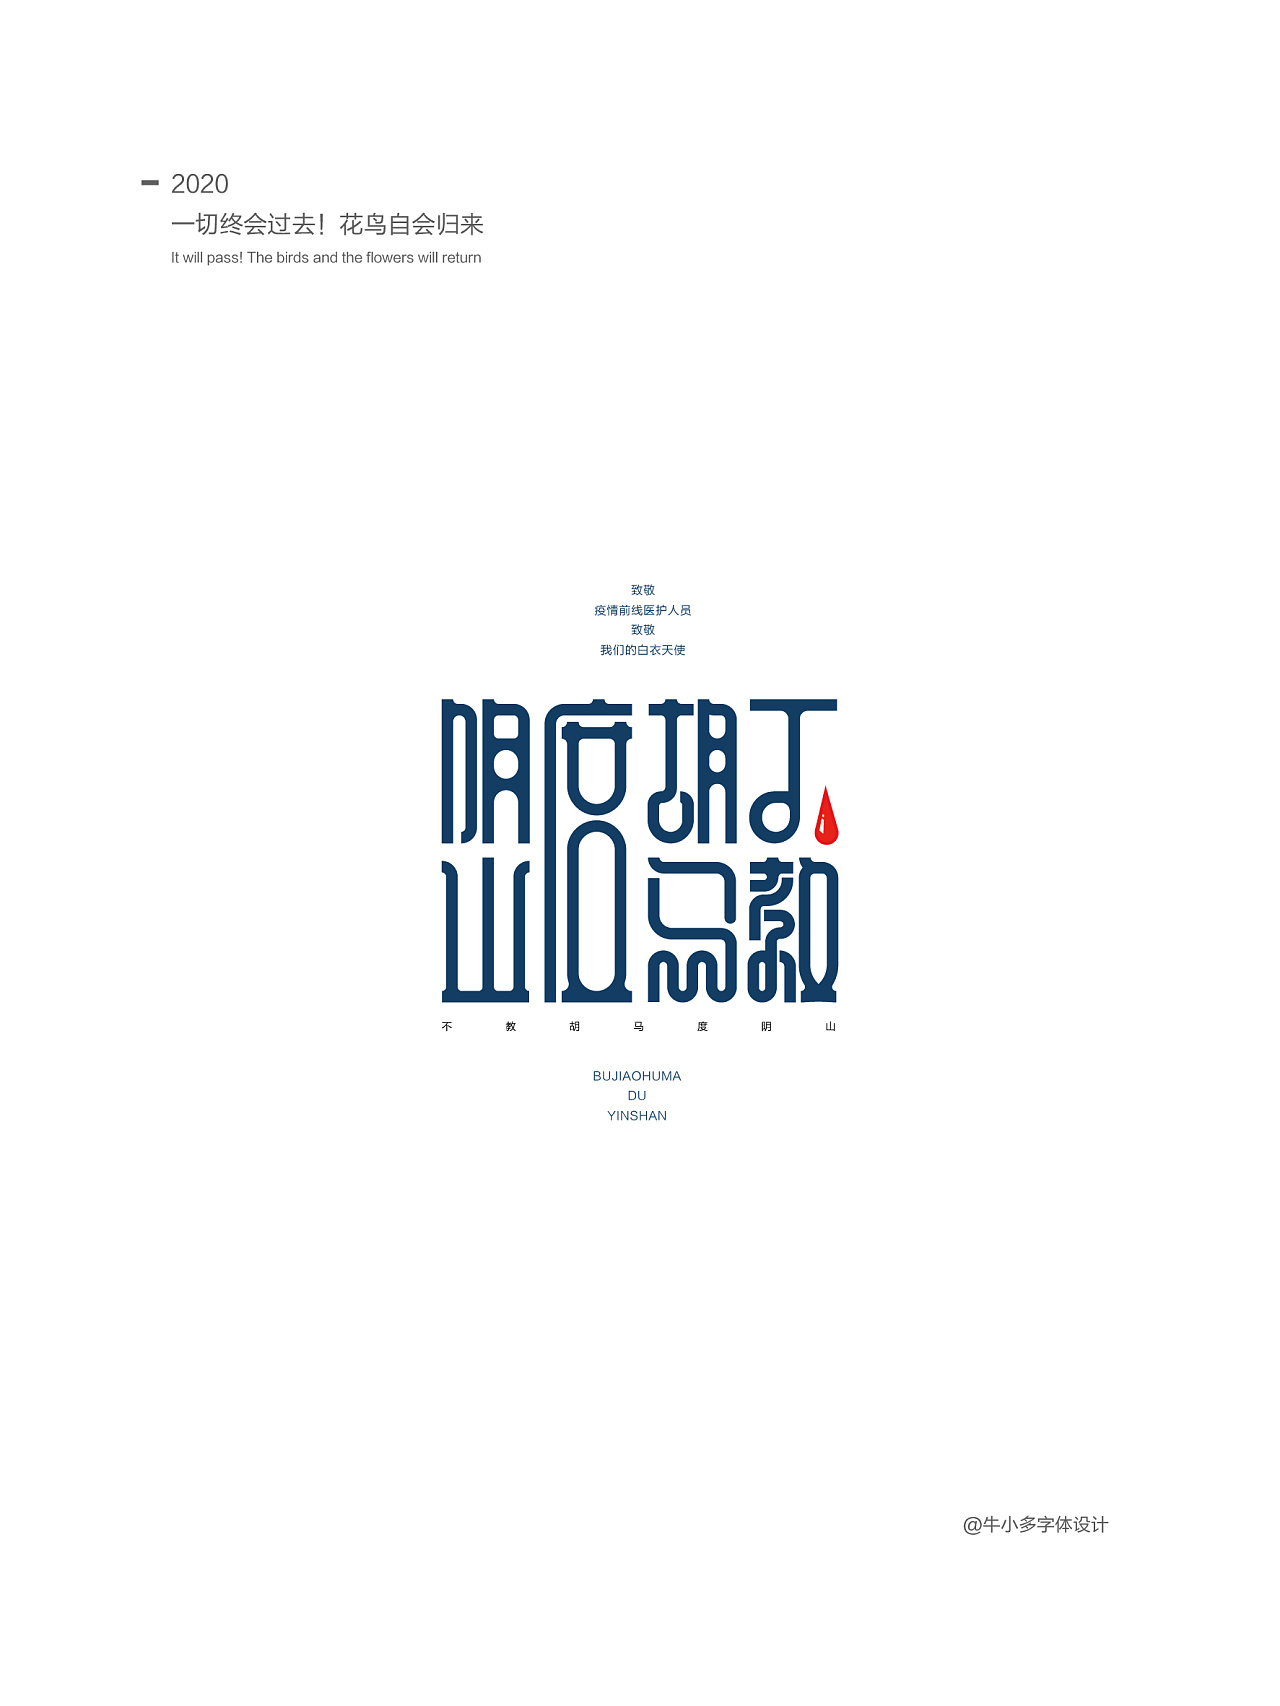 Chinese Creative Font Design-Everything will pass and flowers and birds will return!